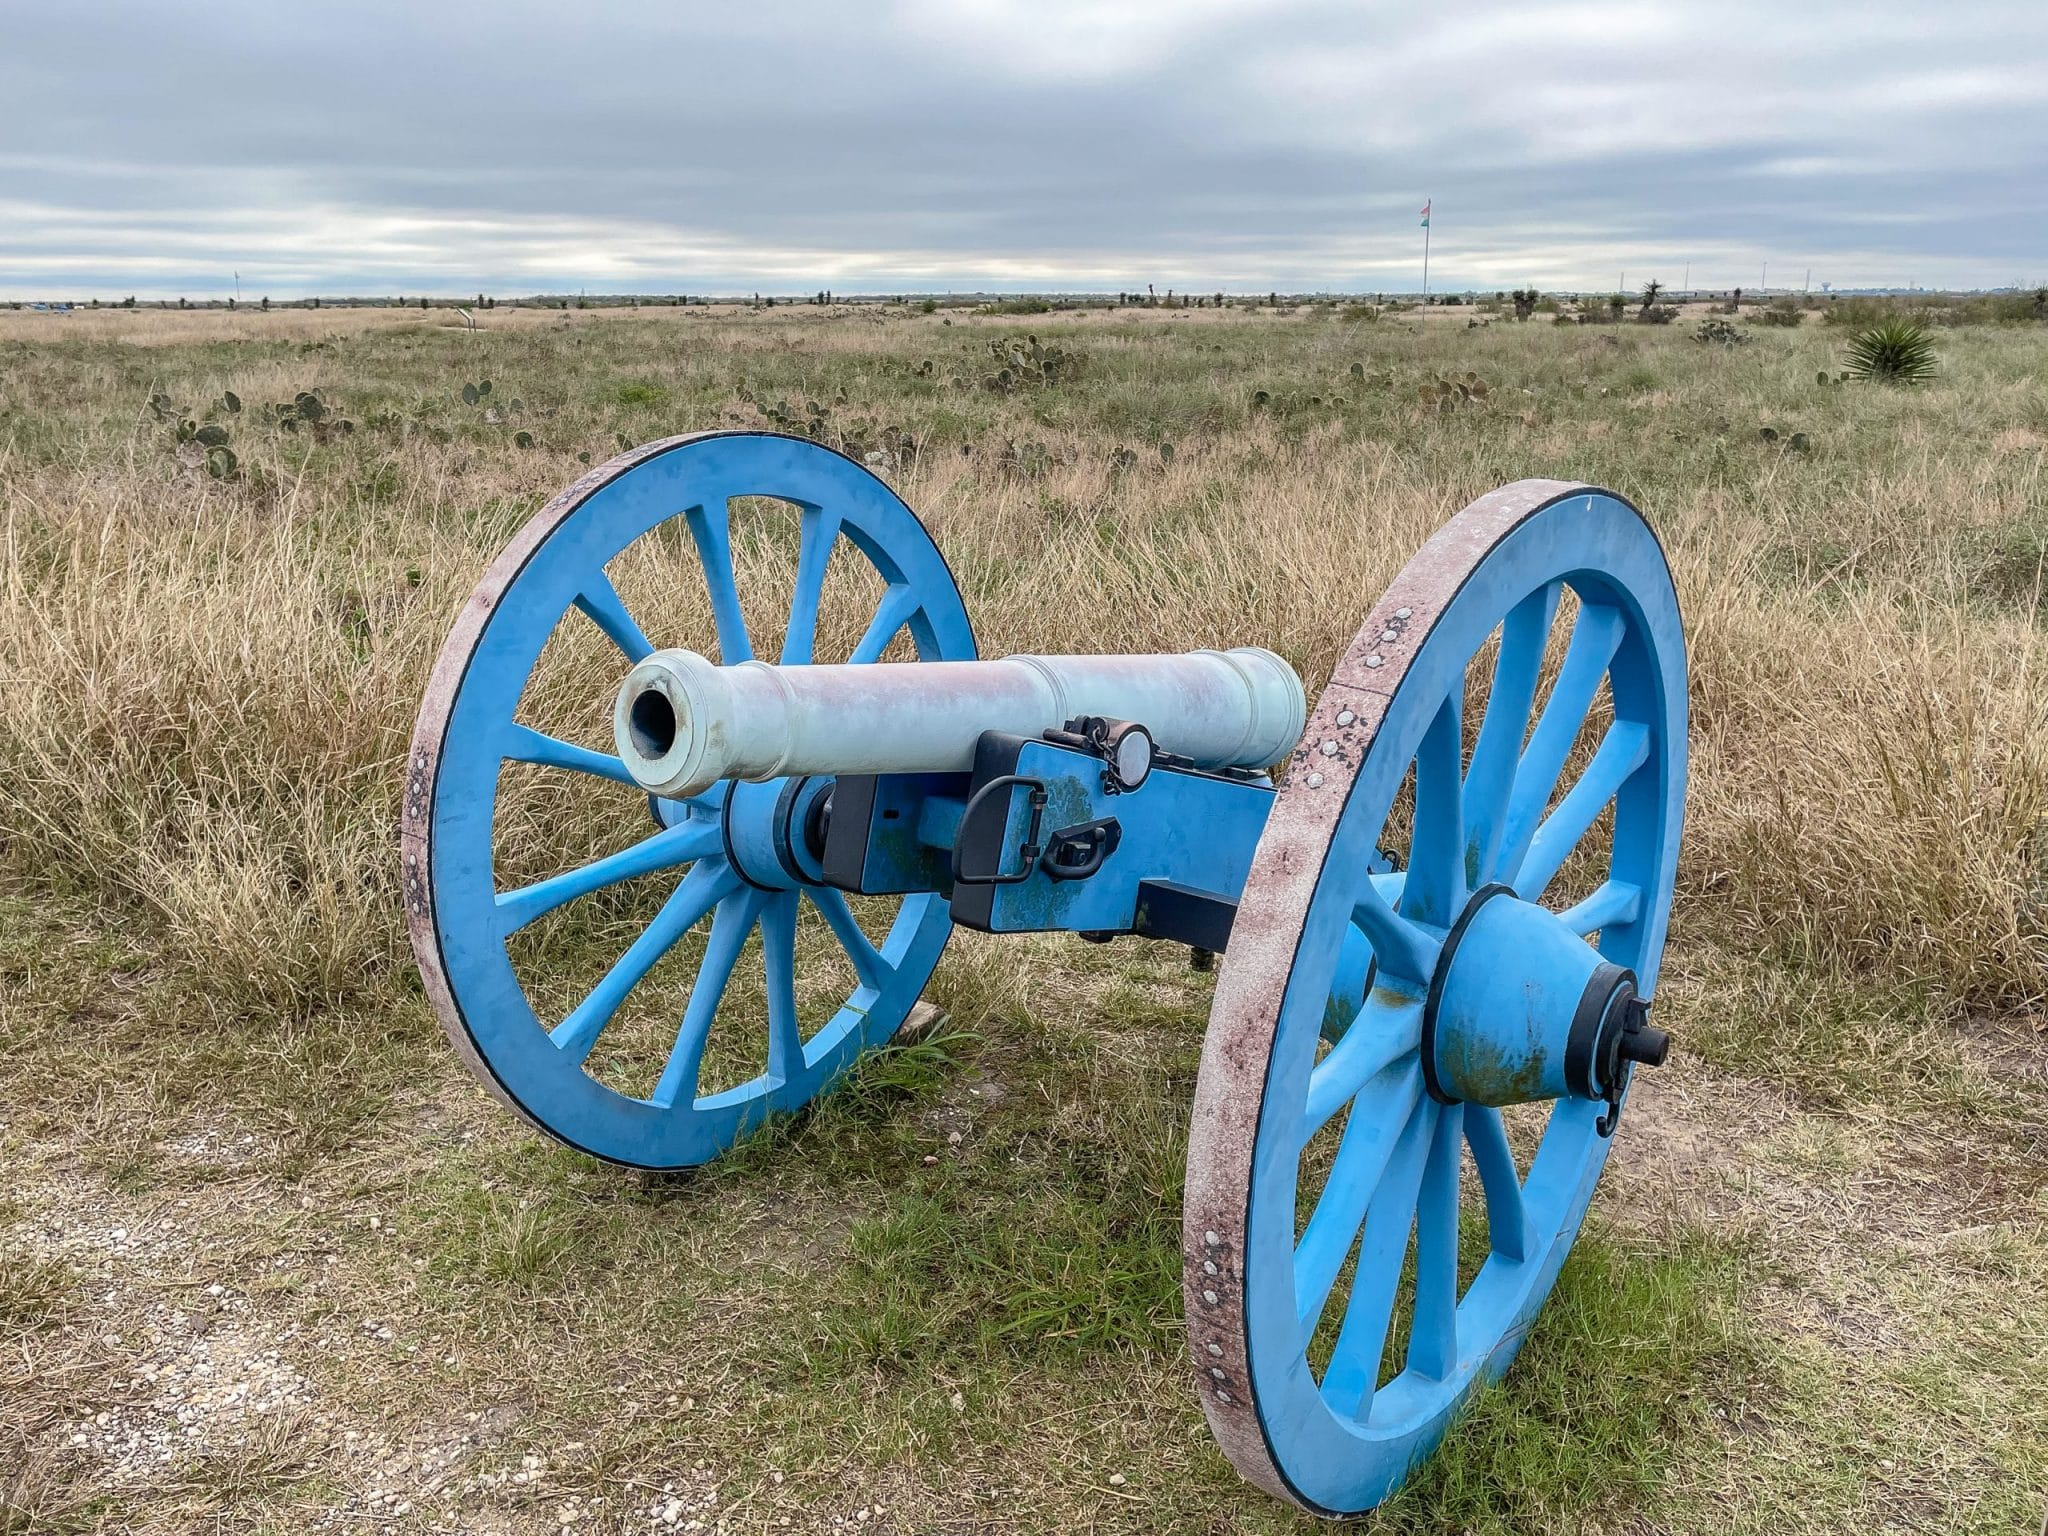 A cannon with a banner behind it marking the Mexican lines at Palo Alto Battlefield